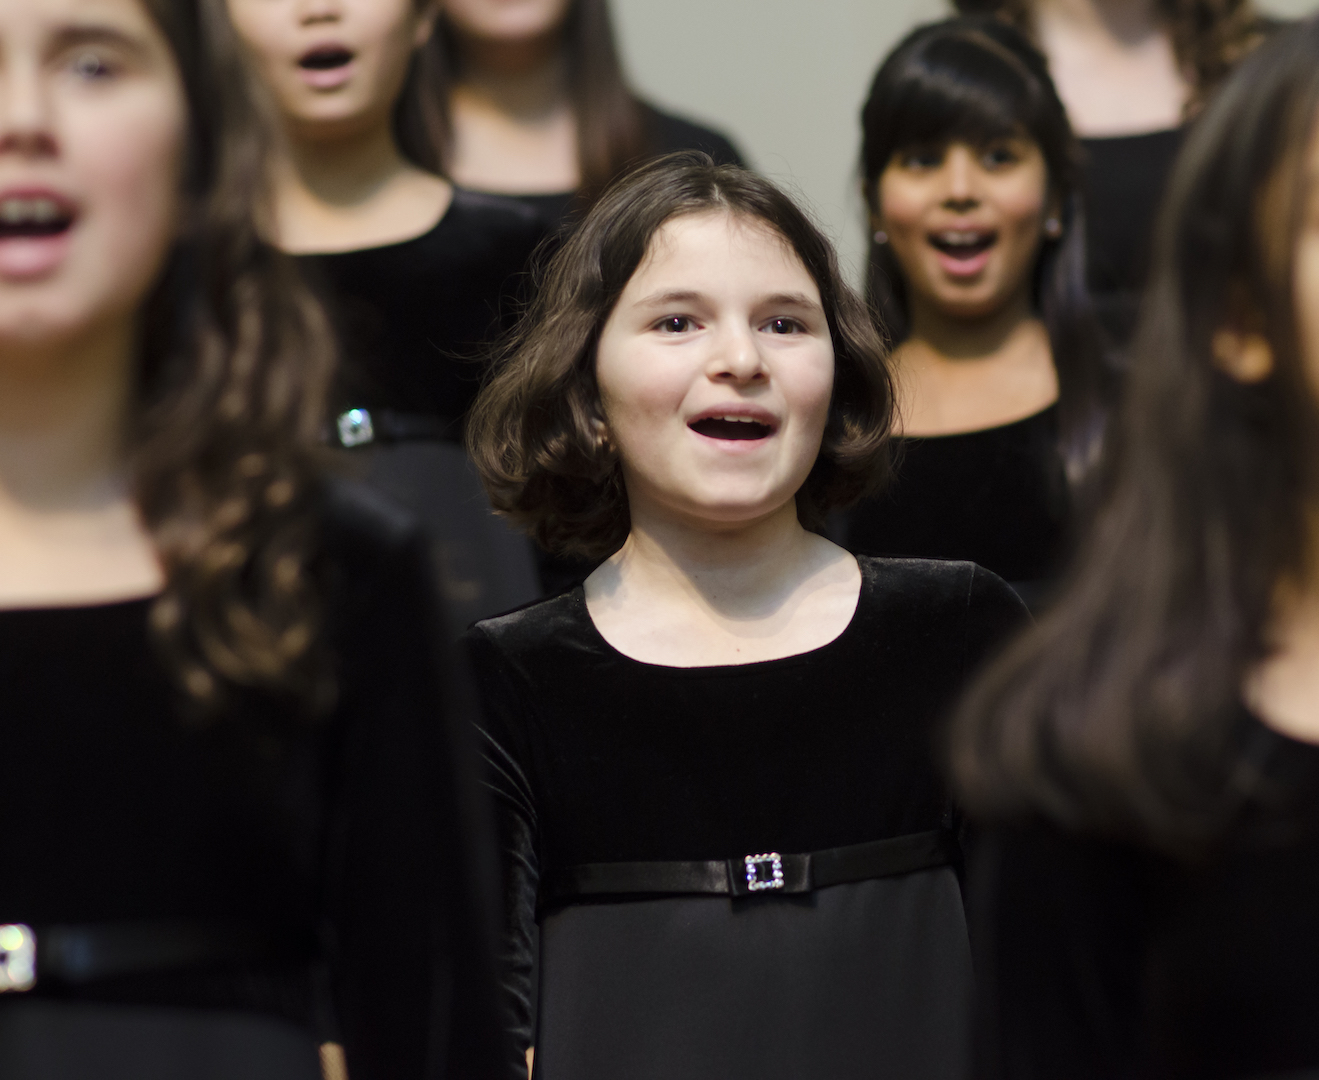 Bellevue Youth Choirs. Ailisa Newhall, Pinehurst Photography